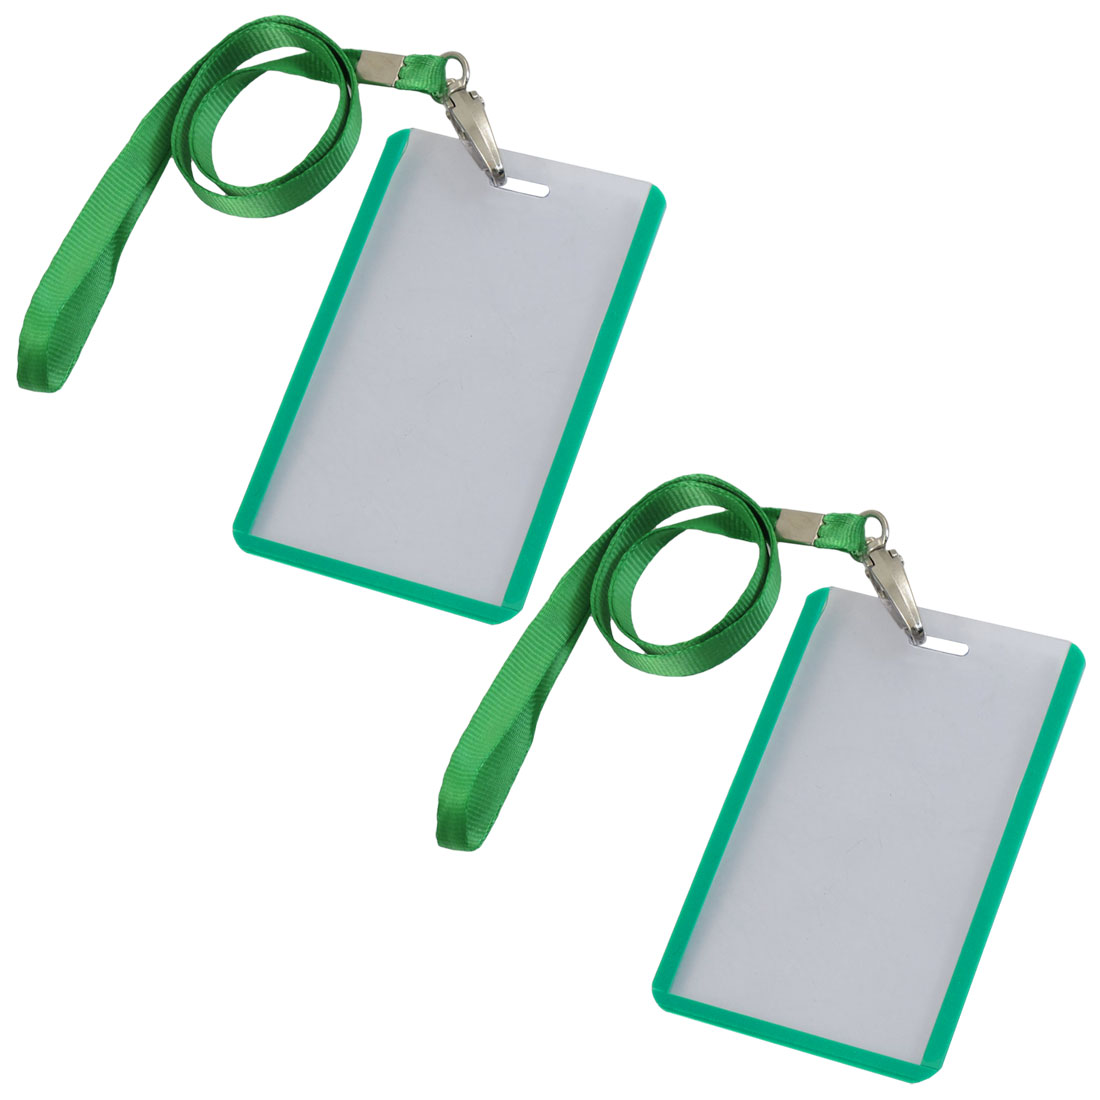 2 Pcs School Office Green Lanyard Vertical B8 ID Name Badge Card Holders